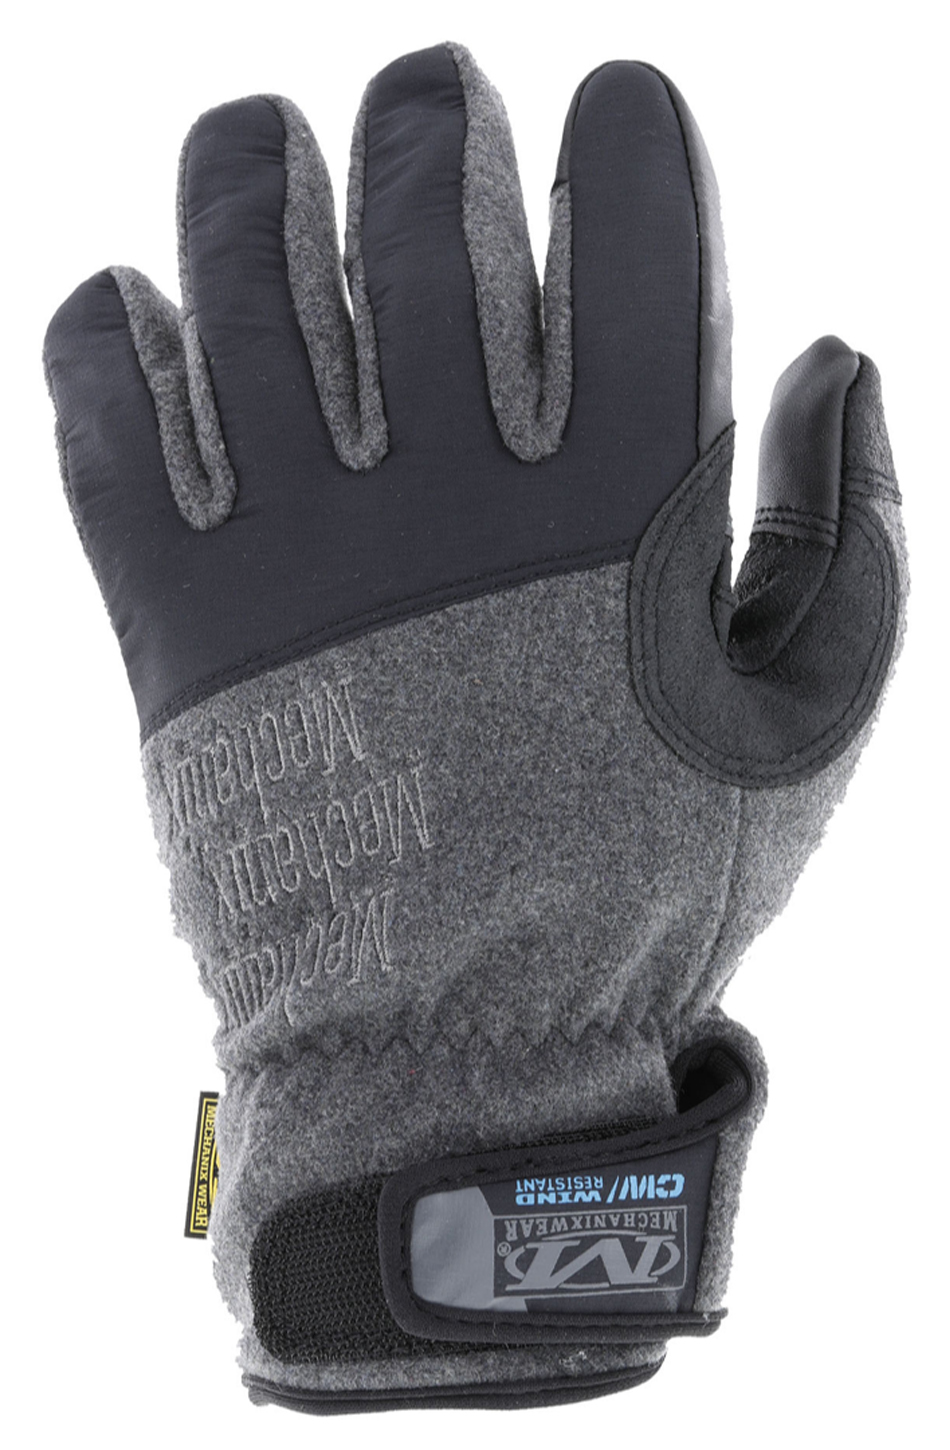 Mechanix Wear MCW-WR-011 Gloves, Shop, Wind Resistant, Reinforced Palm, Hook and Loop Closure, Insulated, Touch Screen Compatible, Black / Gray, X-Large, Pair